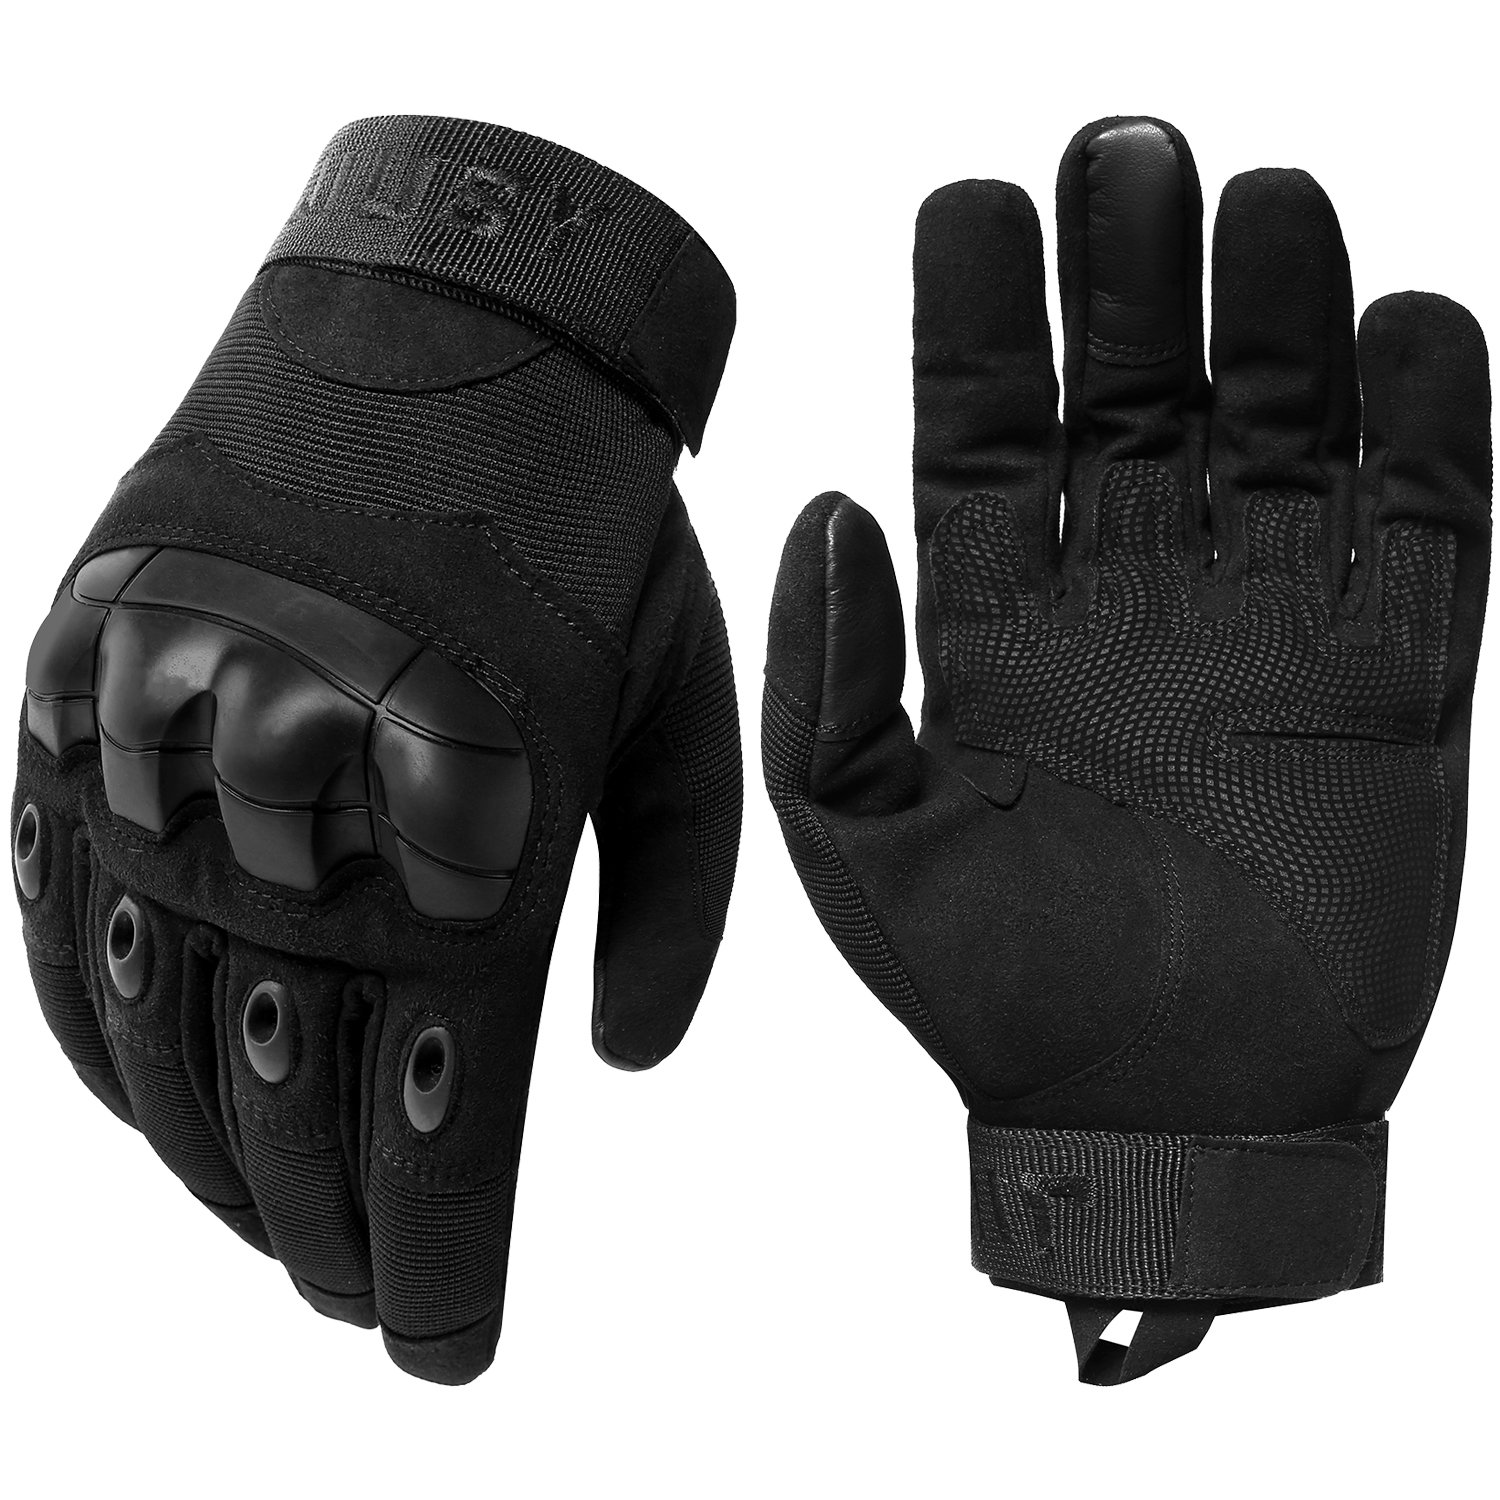 Black tactical gloves - Amazon Com Jiusy Military Rubber Hard Knuckle Tactical Gloves Full Finger Cycling Motorcycle Gloves Sports Outdoors